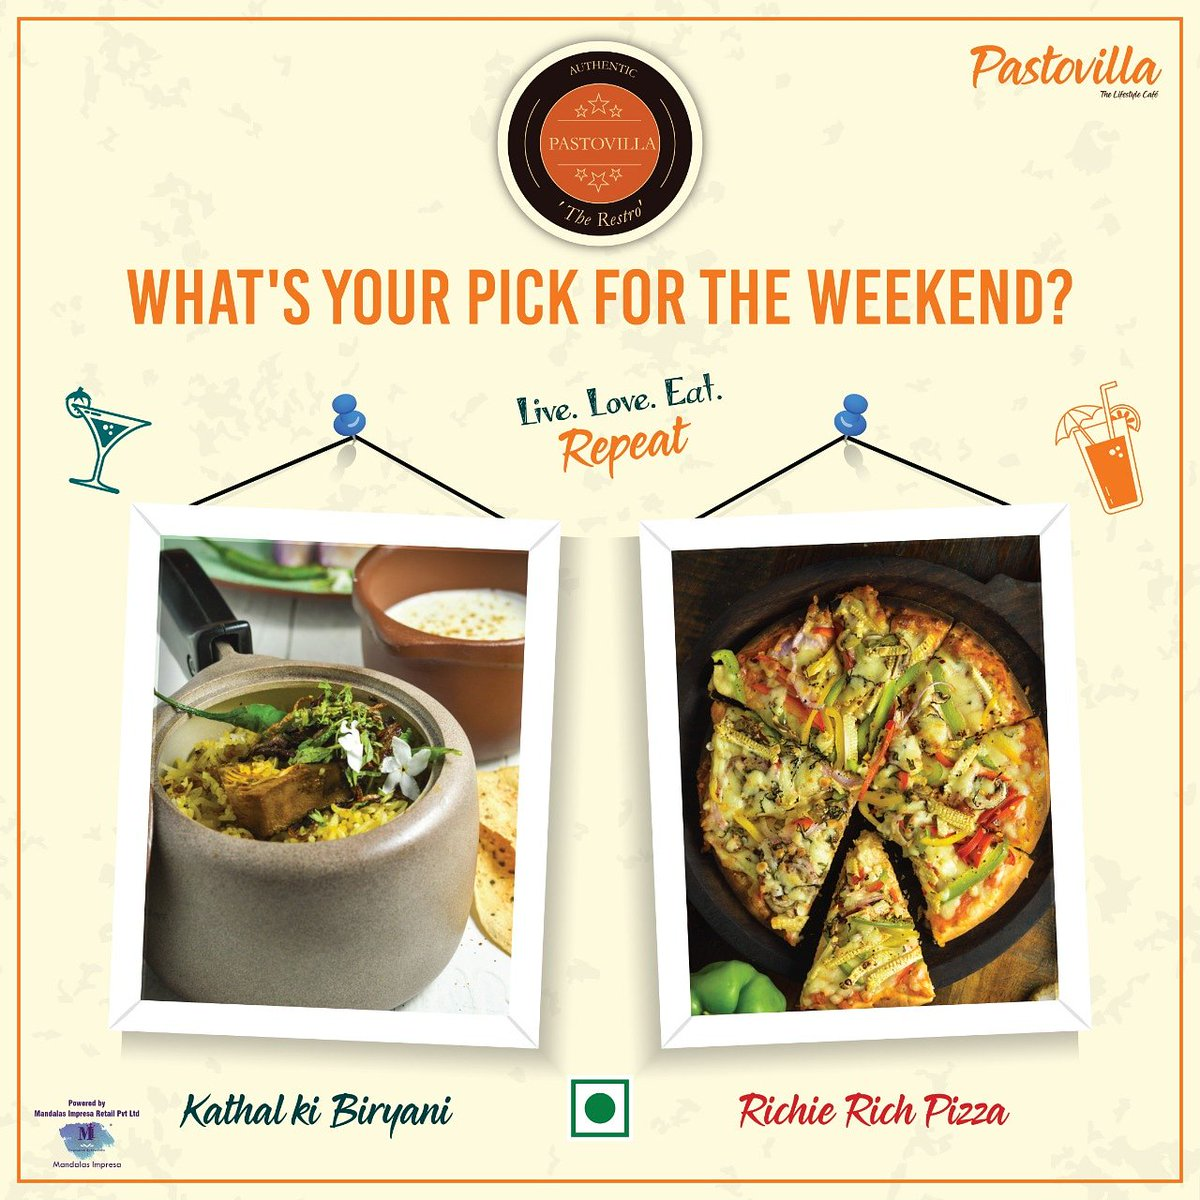 Weekend must be flavorful and spicy! Choose your love: Lazeez Biryani or Our all time fav 50-50 Pizza?#zingyzest #mumbaifoodblogger #mumbaifood #mumbaifoodie #trellingfood #mumbaifoodicious #munchymumbai #trellfood #foodtalkindia #pastovilla #thelifestylecafe #healthy